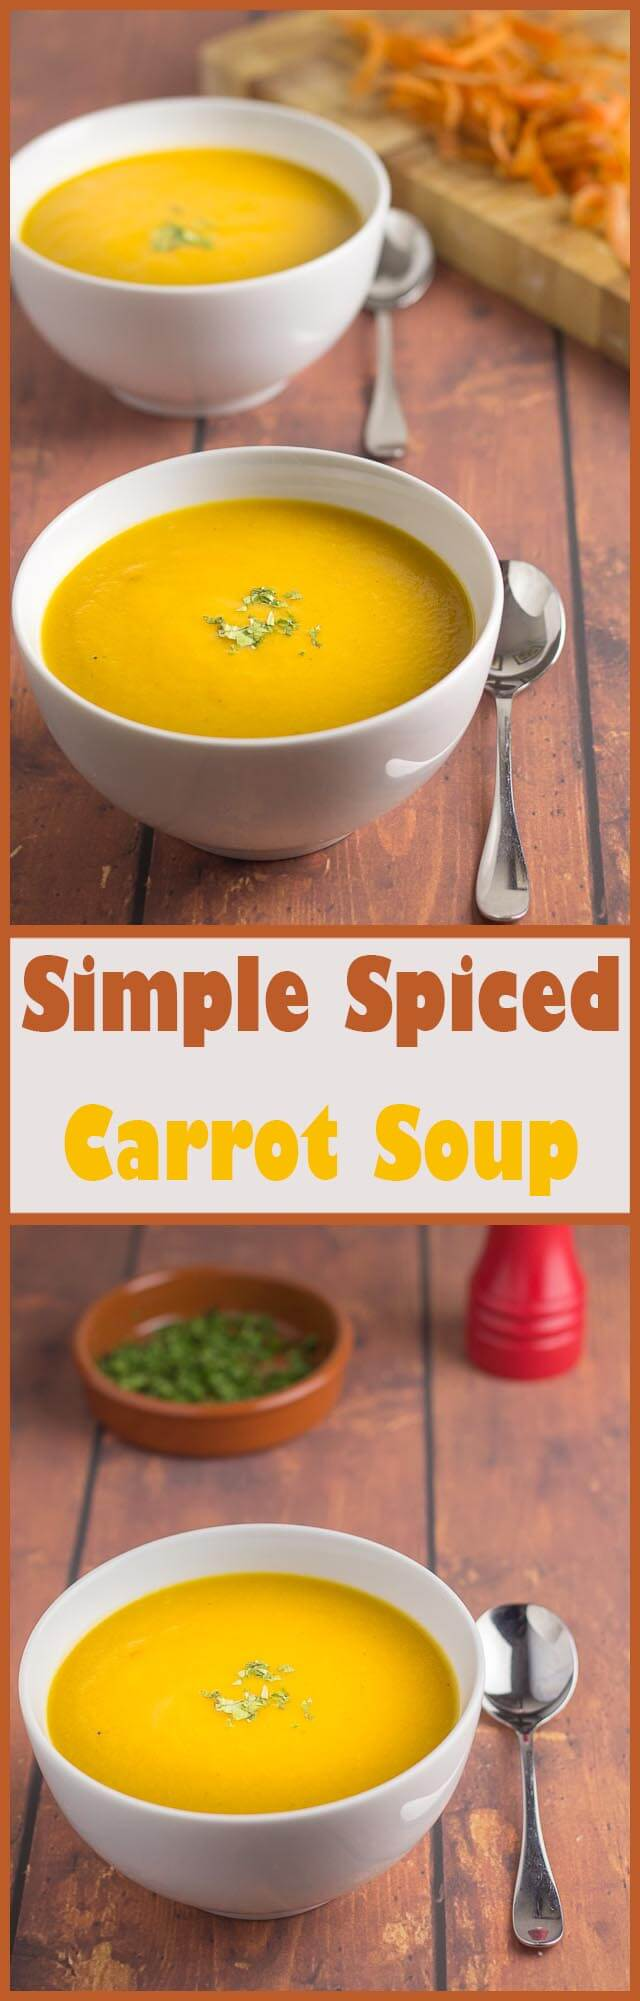 This simple spiced carrot soup is vegan, gluten free and paleo. It proves that healthy eating doesn't have to be a complicated or expensive. I think you're going to love this tasty, delicately spiced, healthy lunchtime meal.